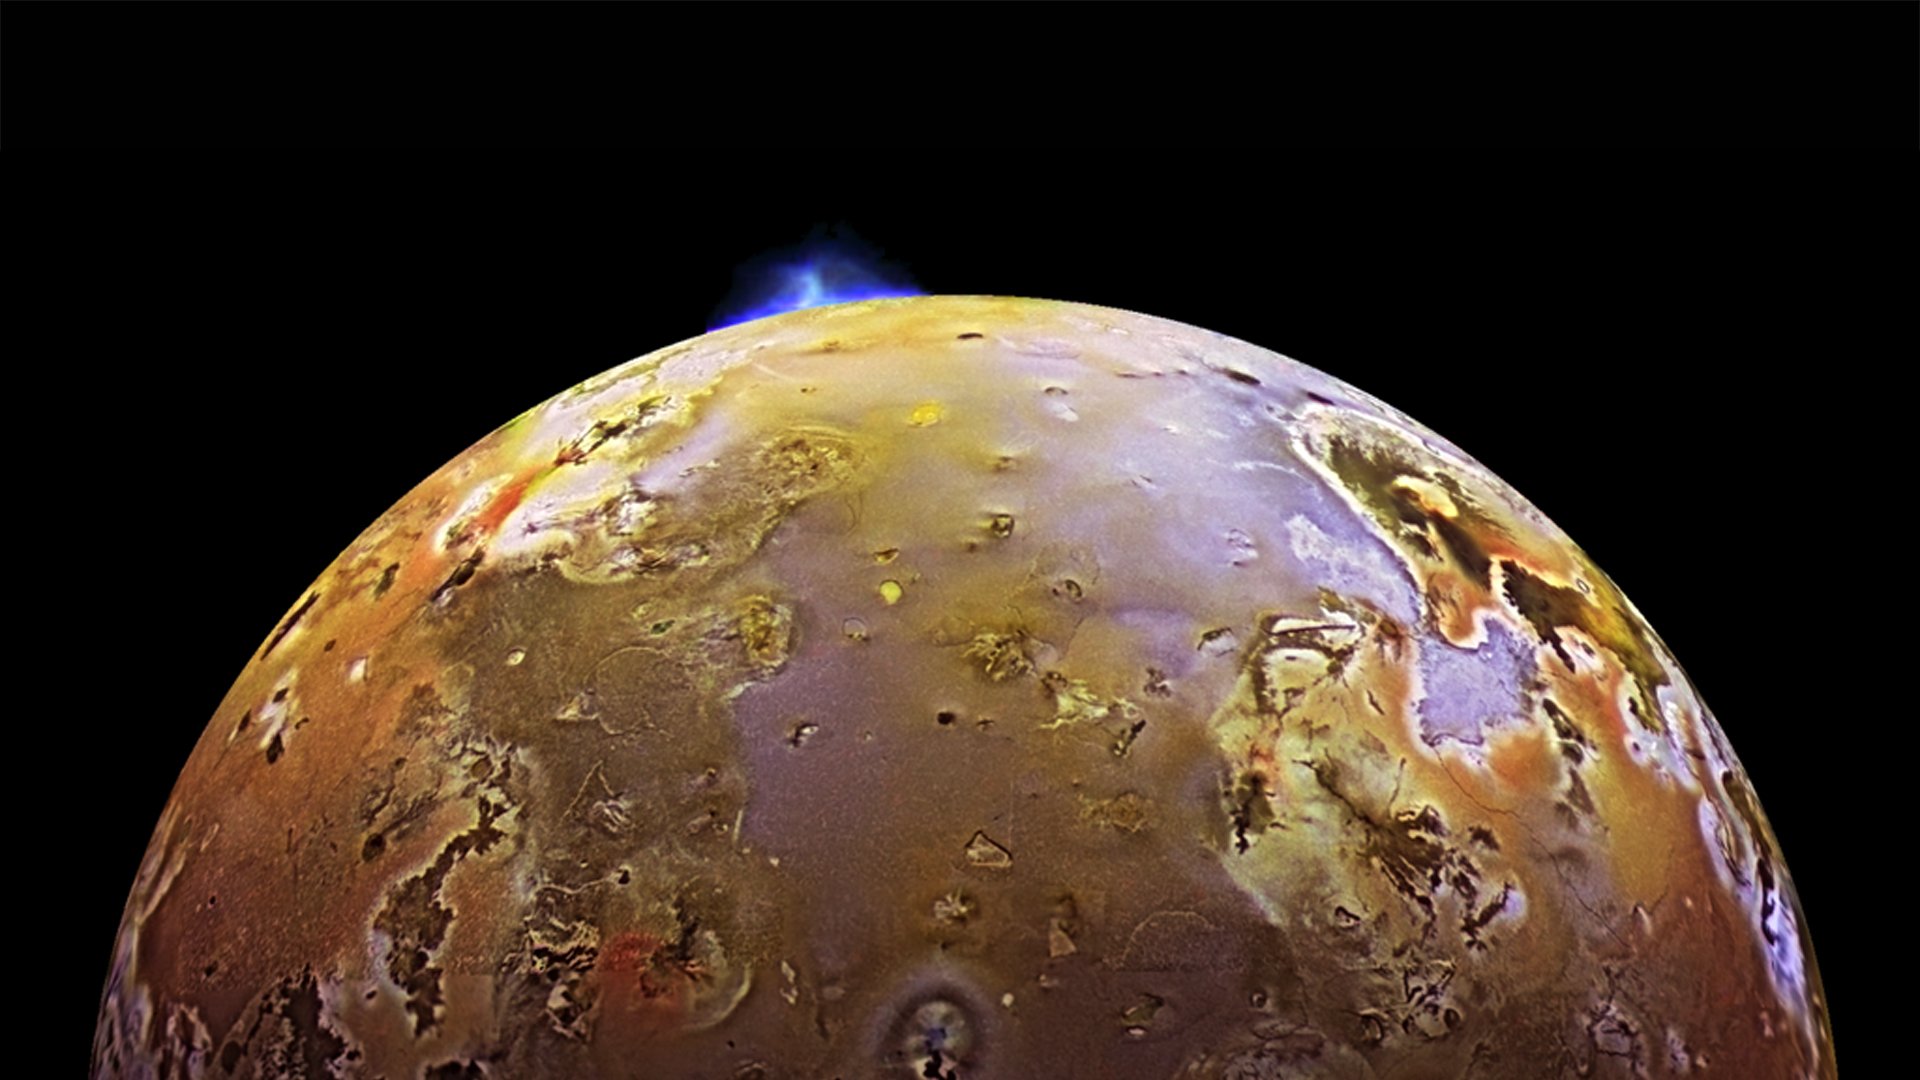 volcanic plume visible over the limb of the moon Io